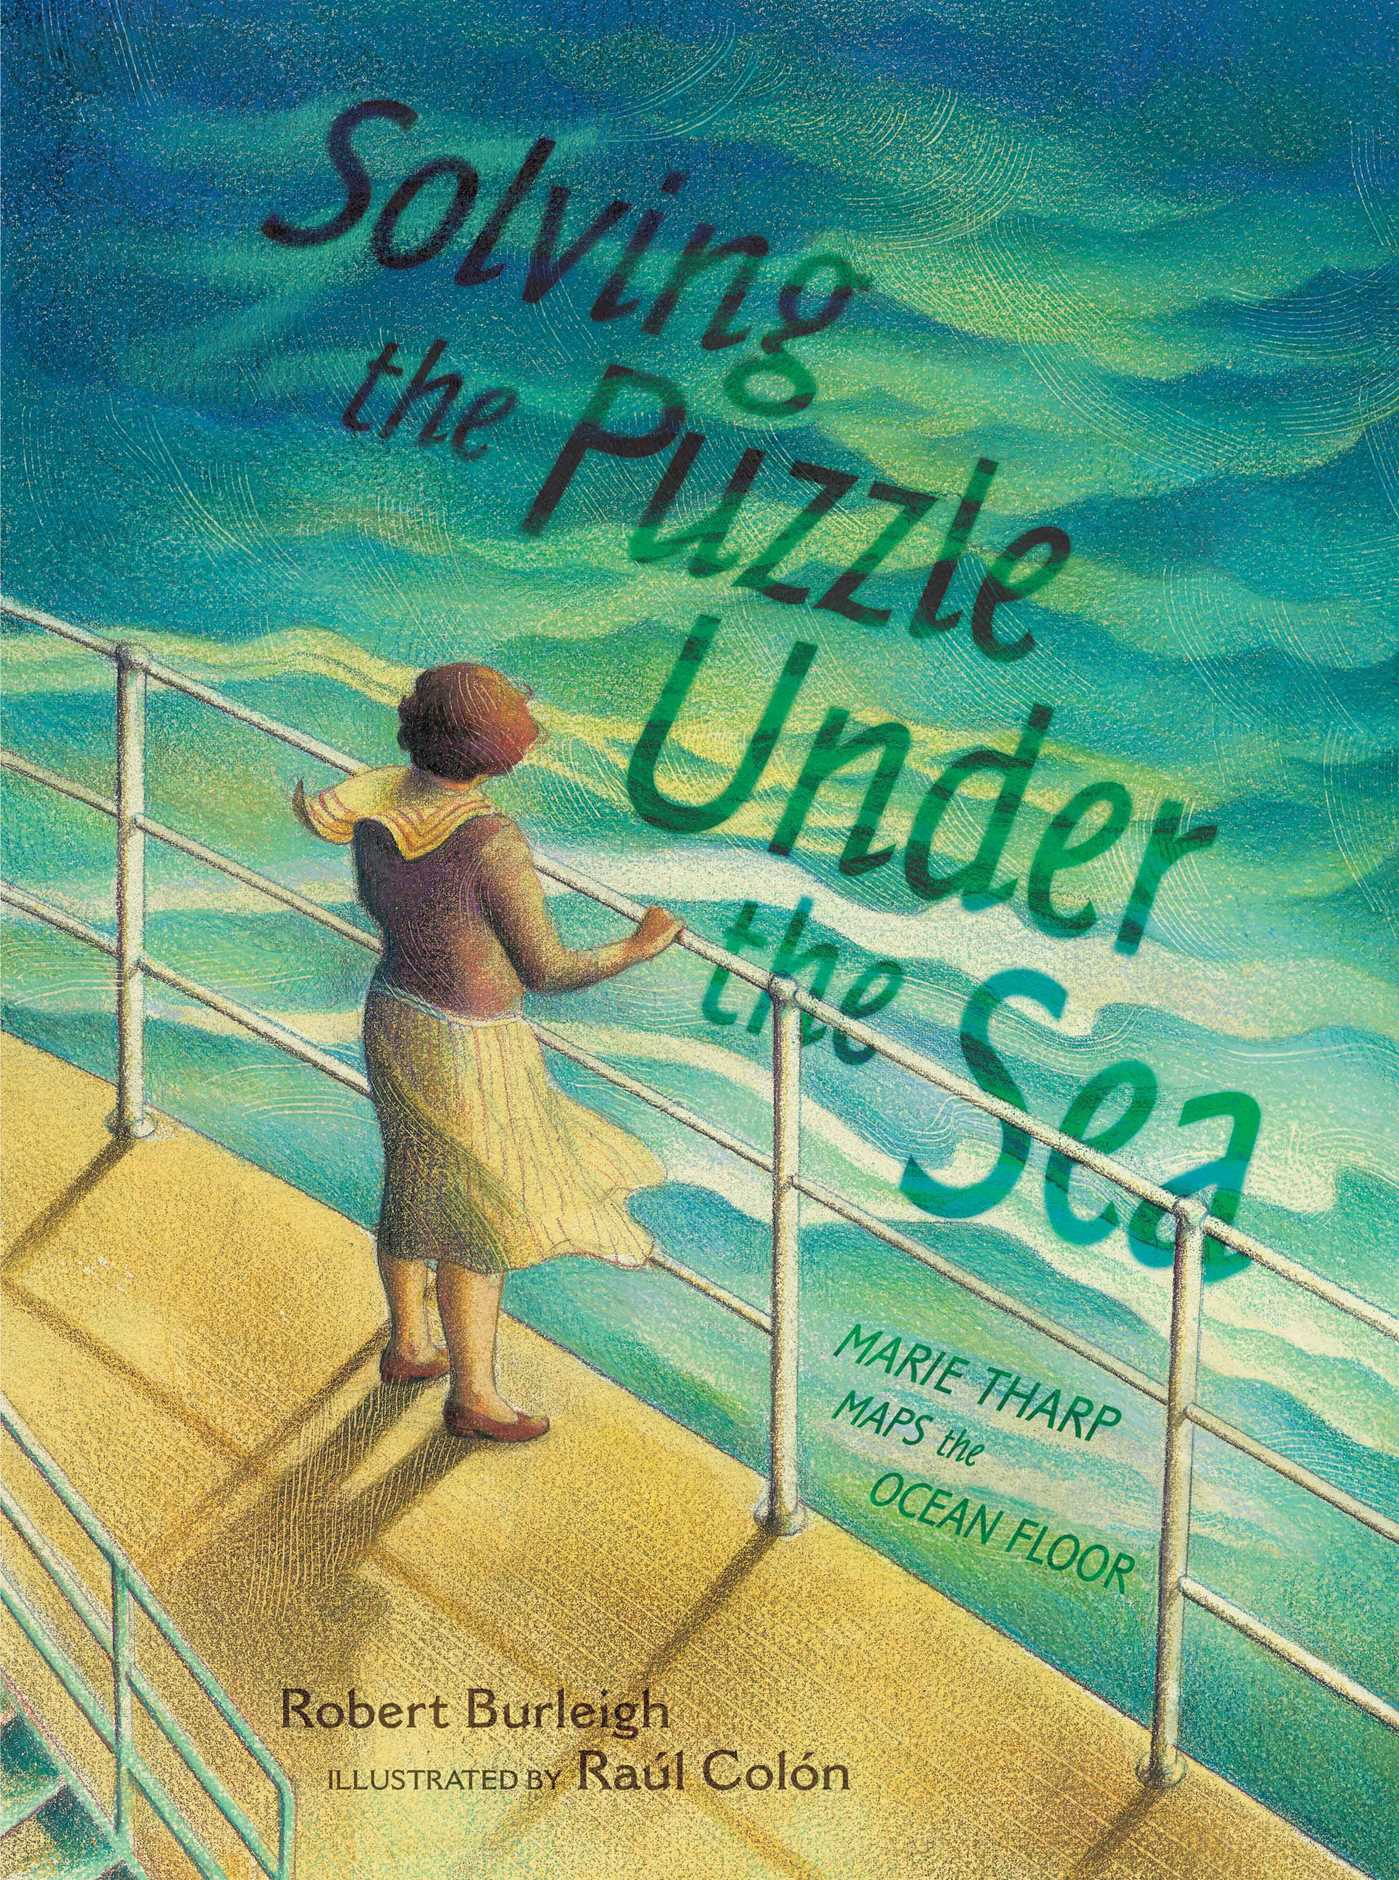 Solving the Puzzle Under the Sea  Book by Robert Burleigh Ral